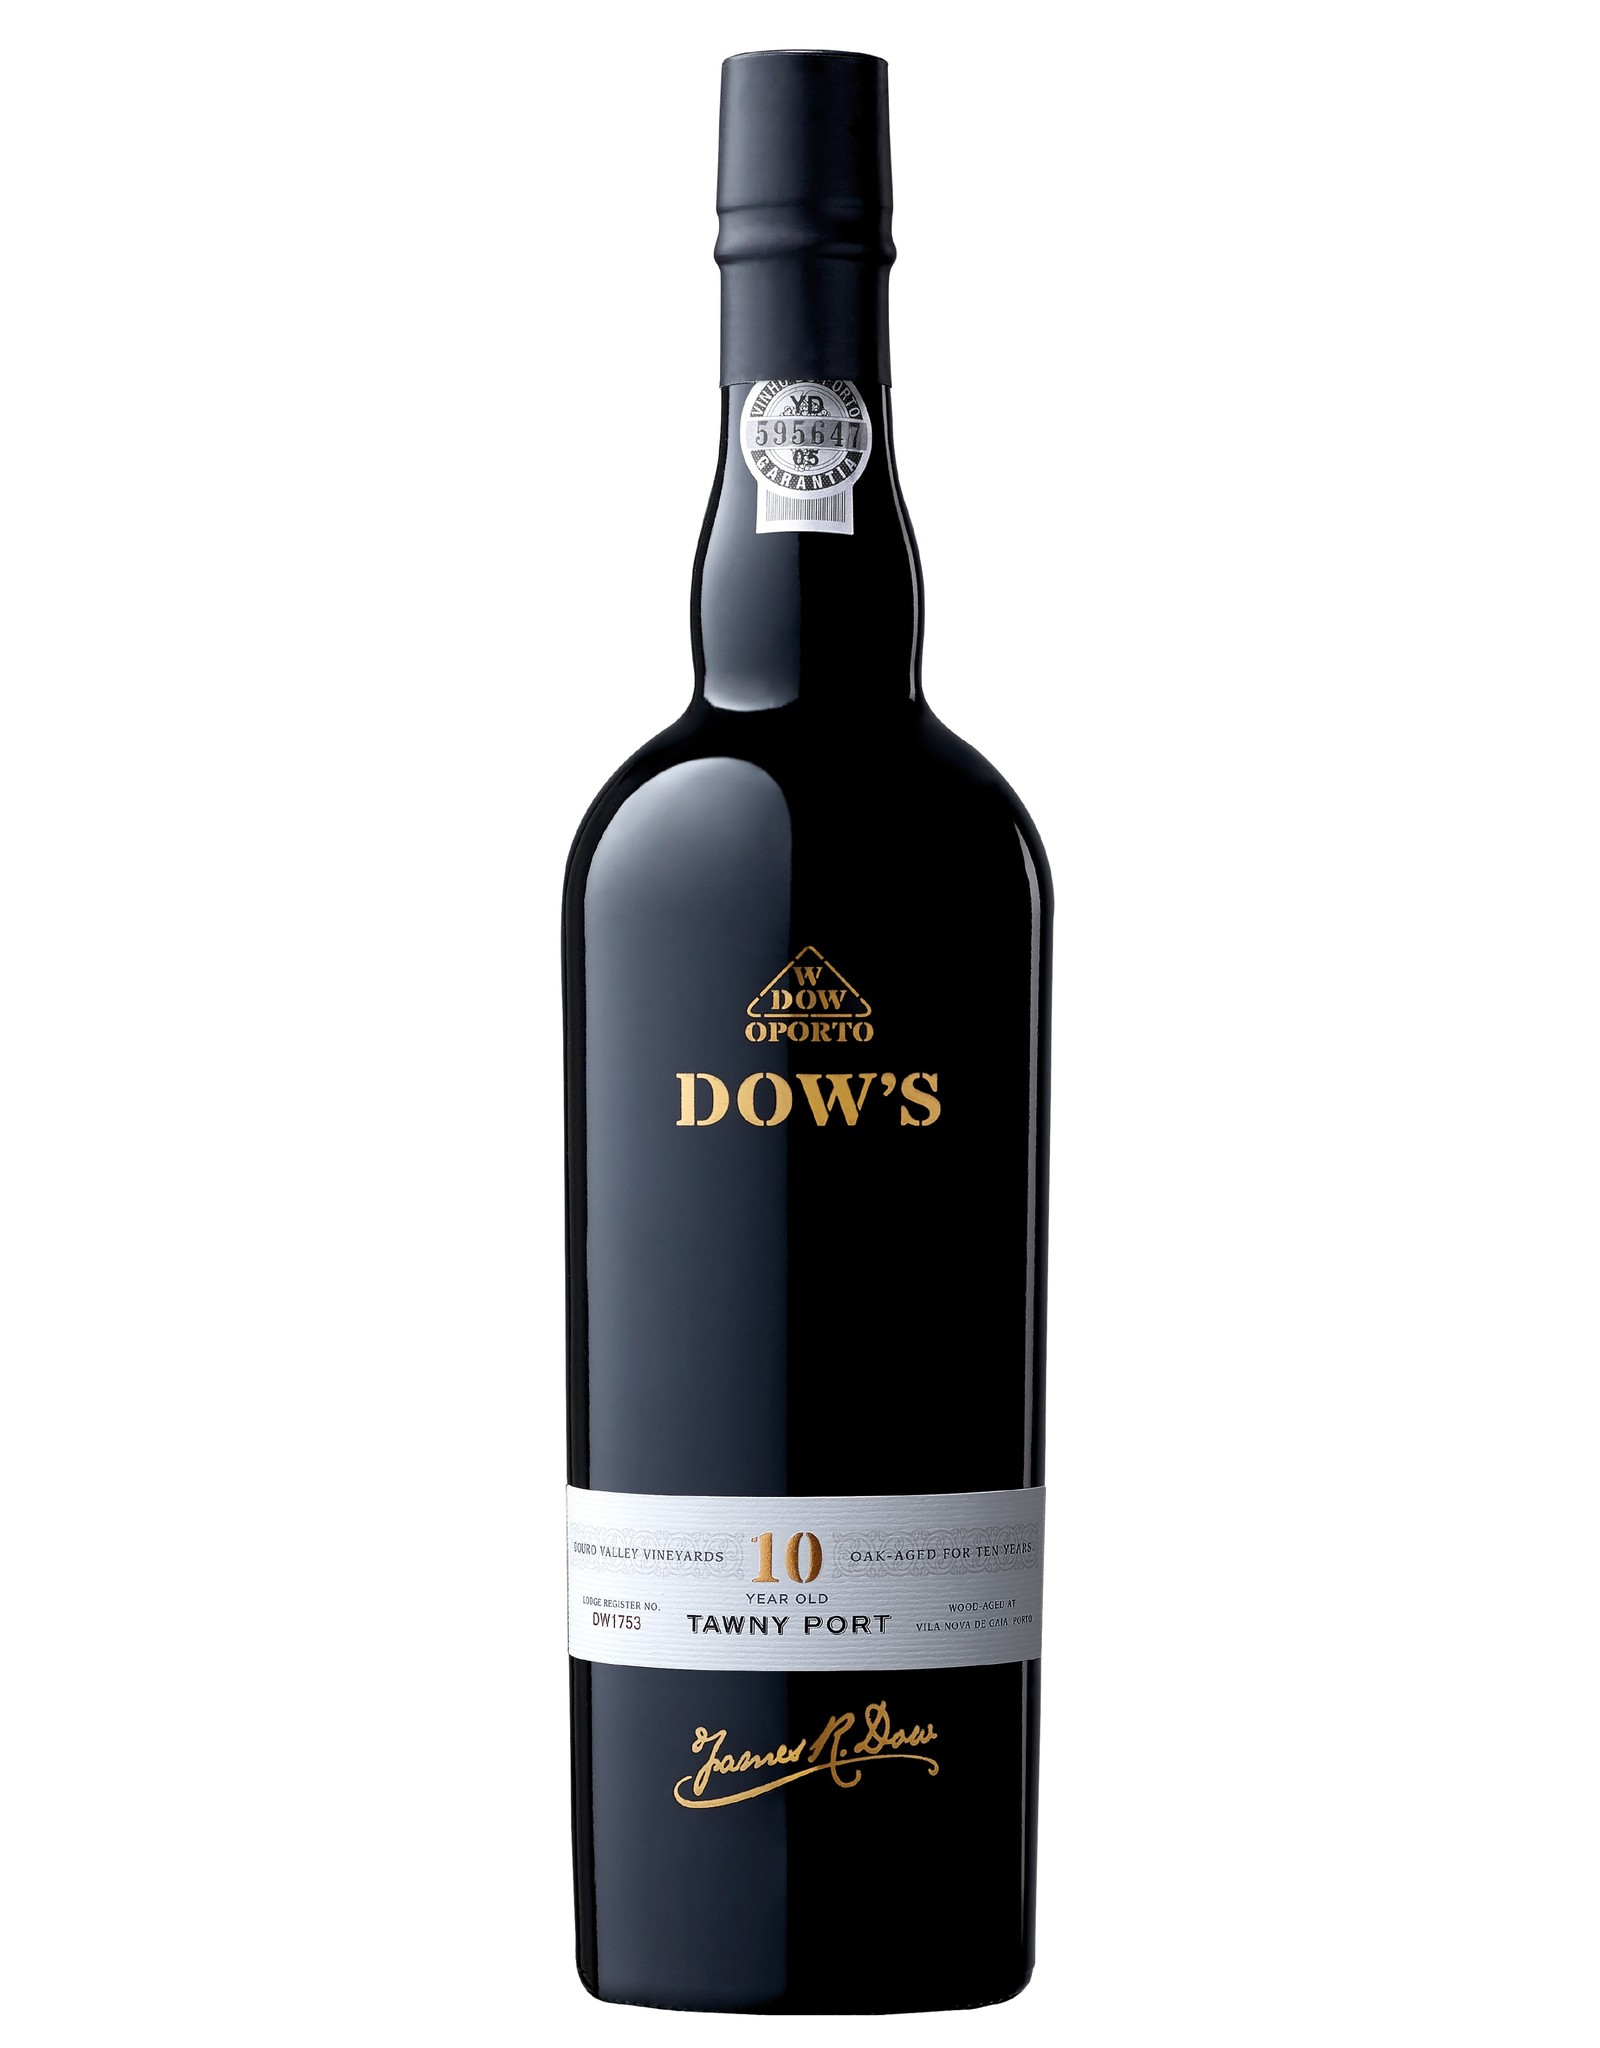 Dow's 10 Year Old Tawny